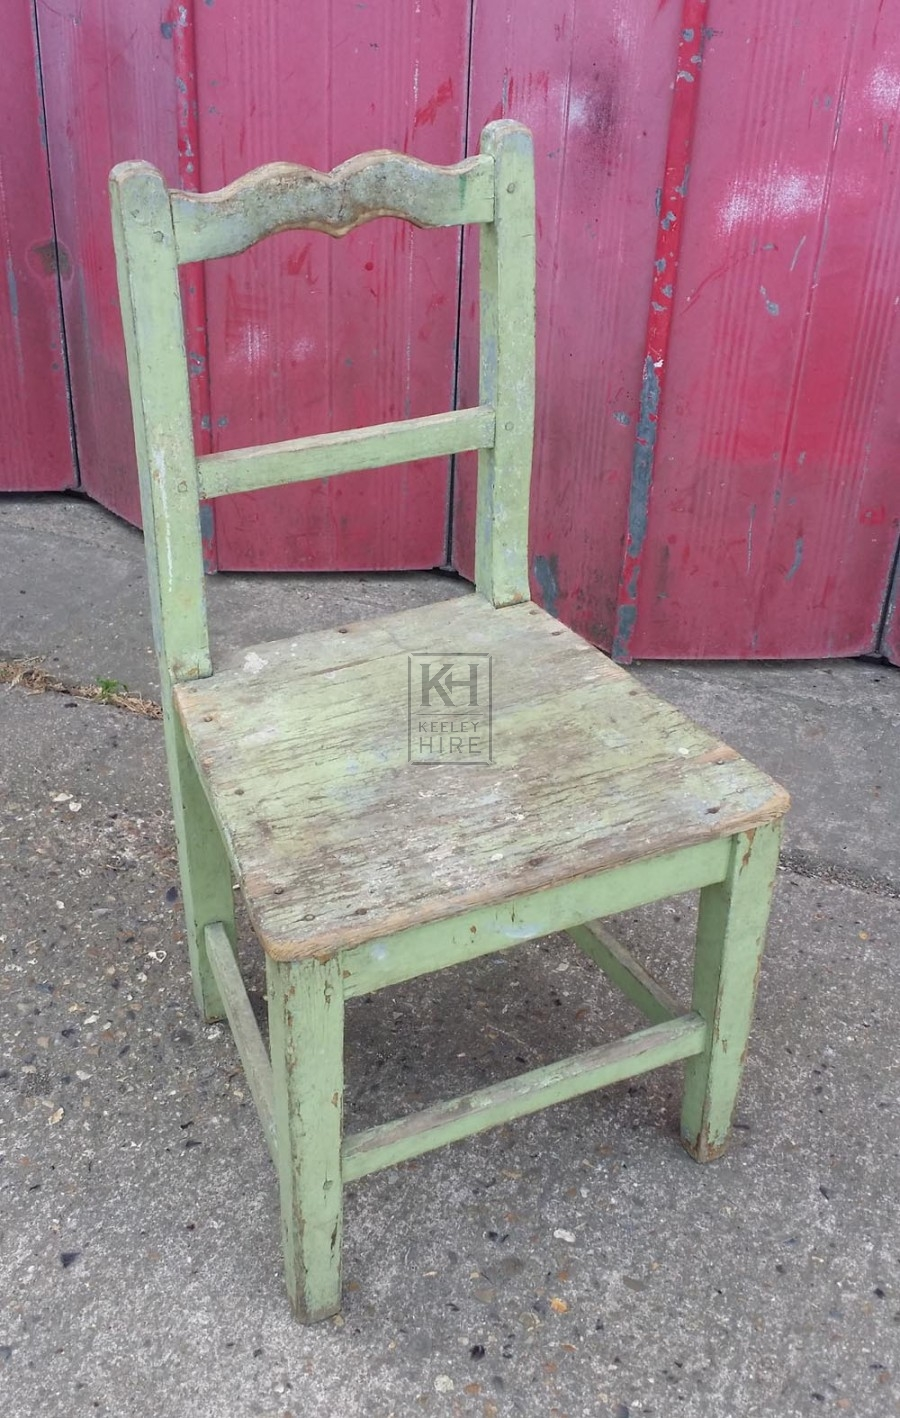 Faded green painted chair